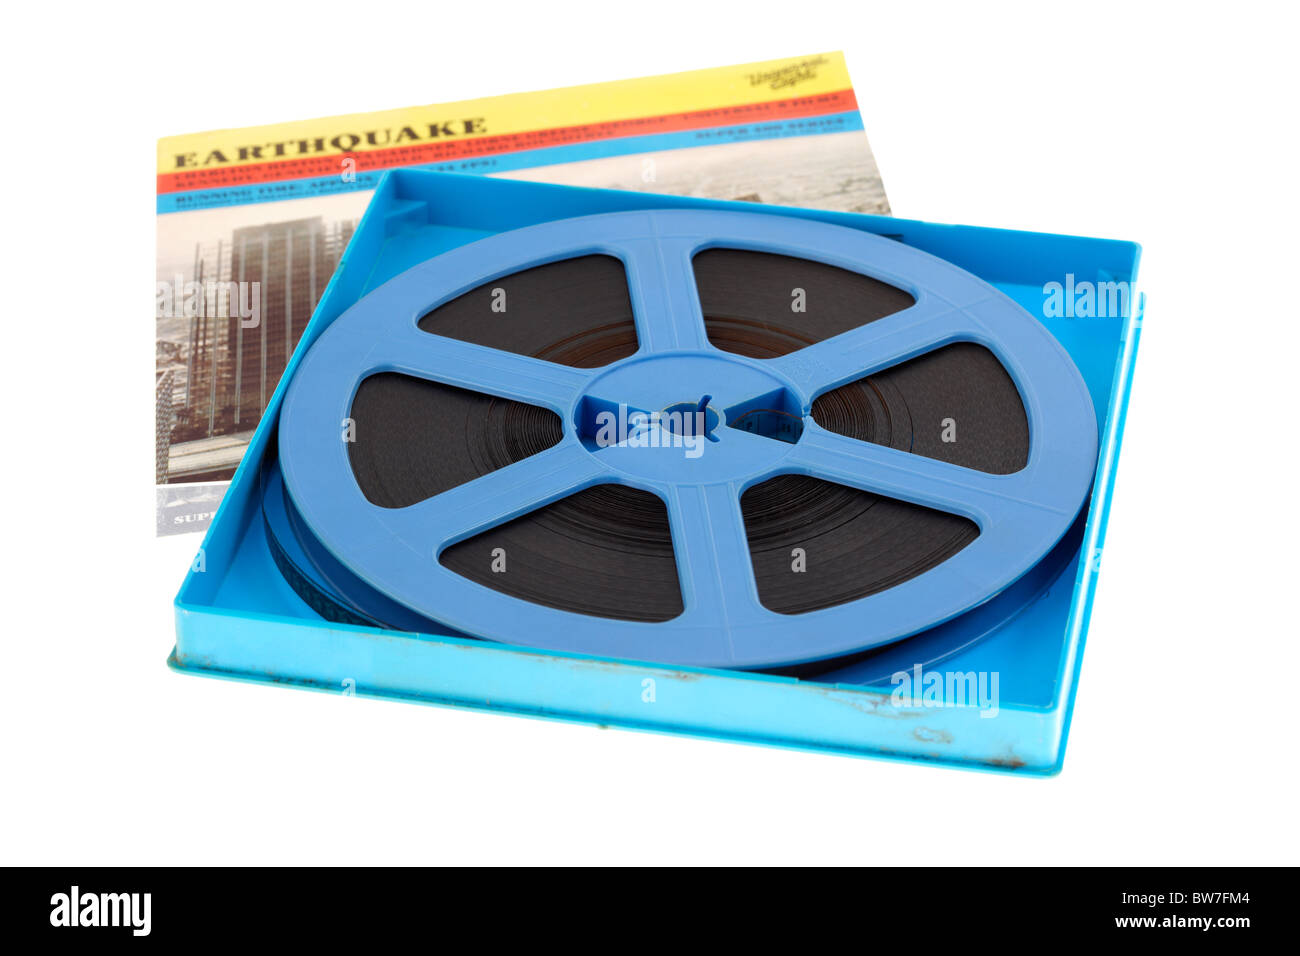 super8 cine film reel of the film earthquake for home use - Stock Image